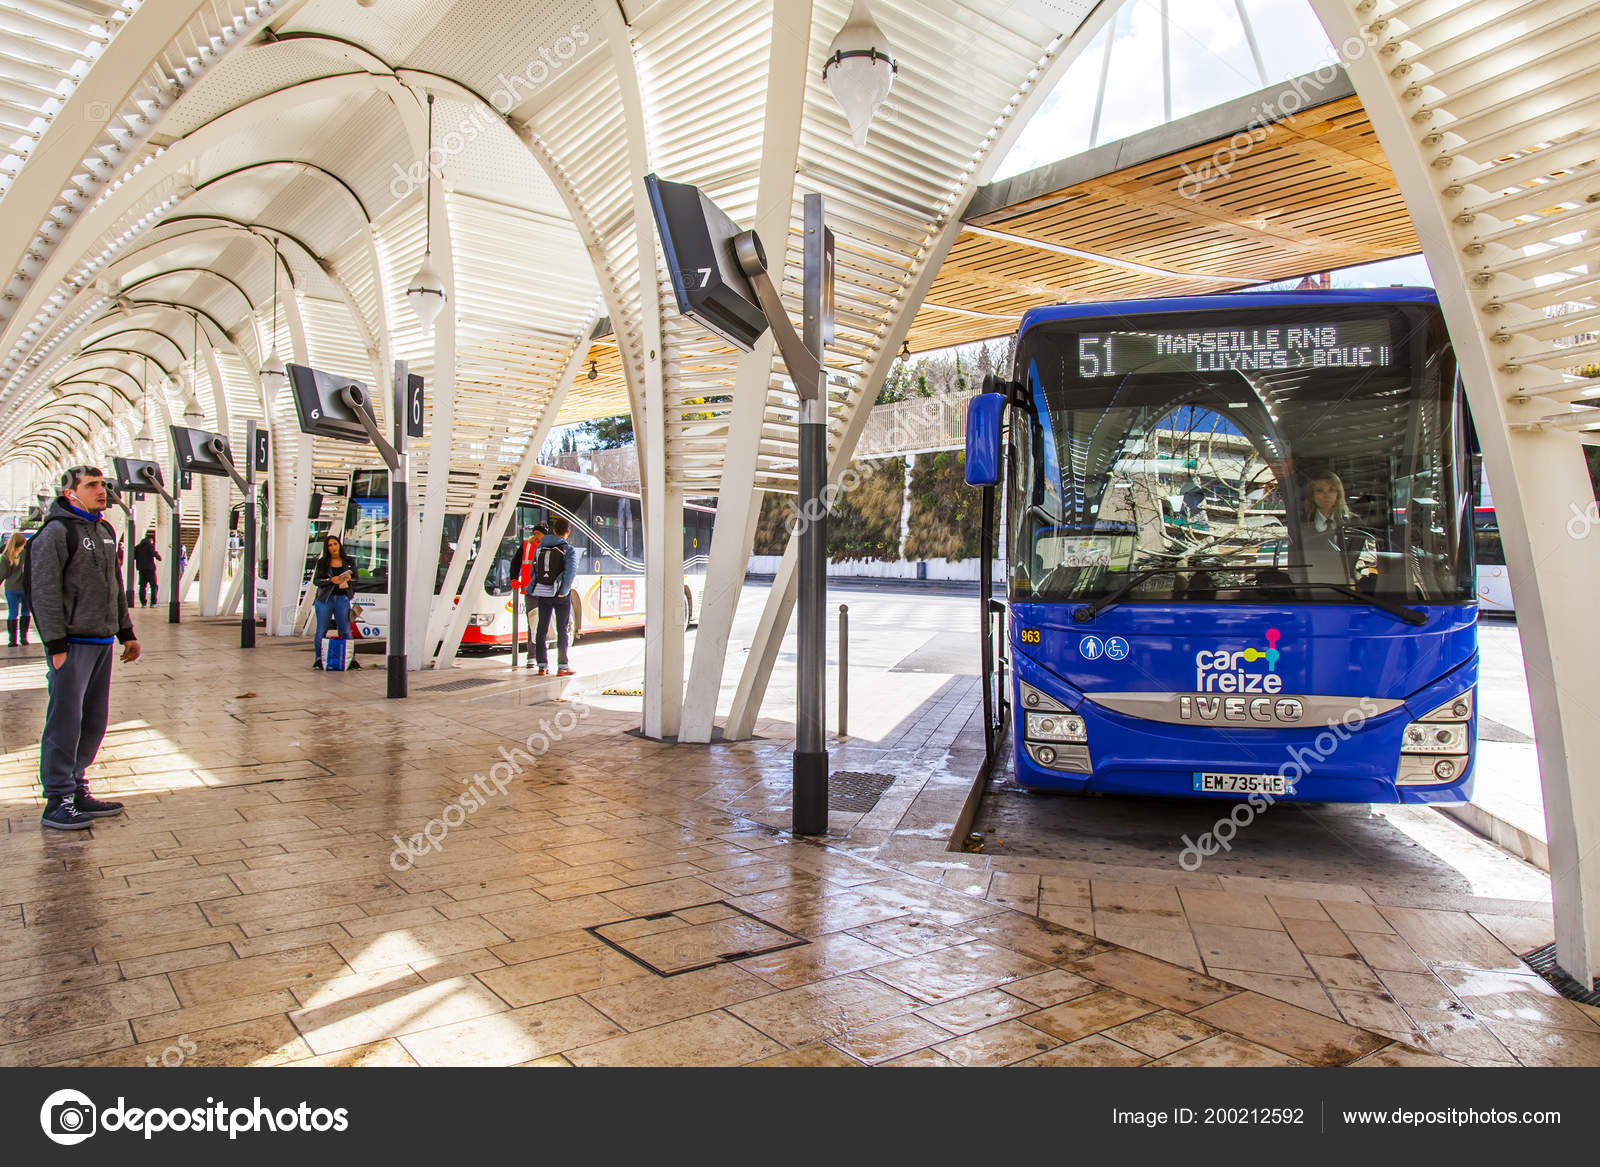 Aix provence france march 2018 buses wait passengers city for Aix en provence salon de provence bus